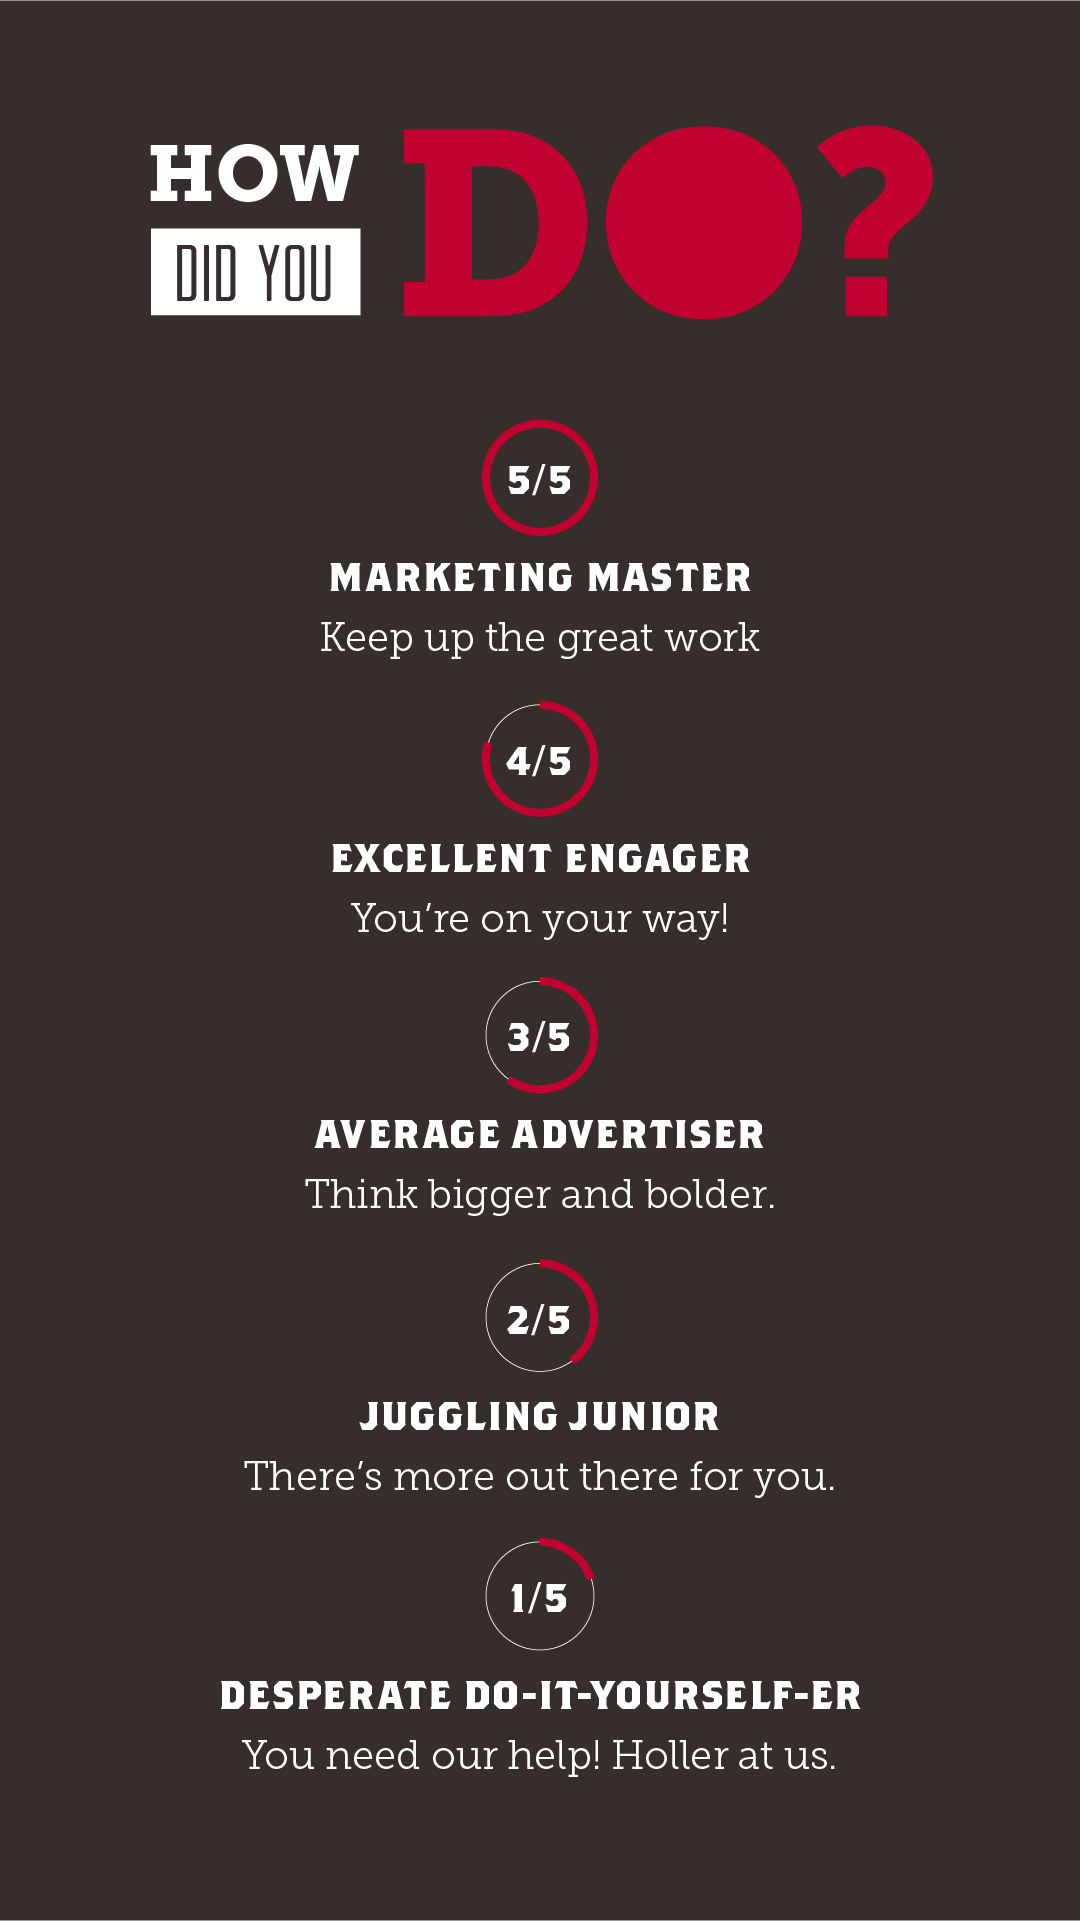 Ace your marketing infographic part 3